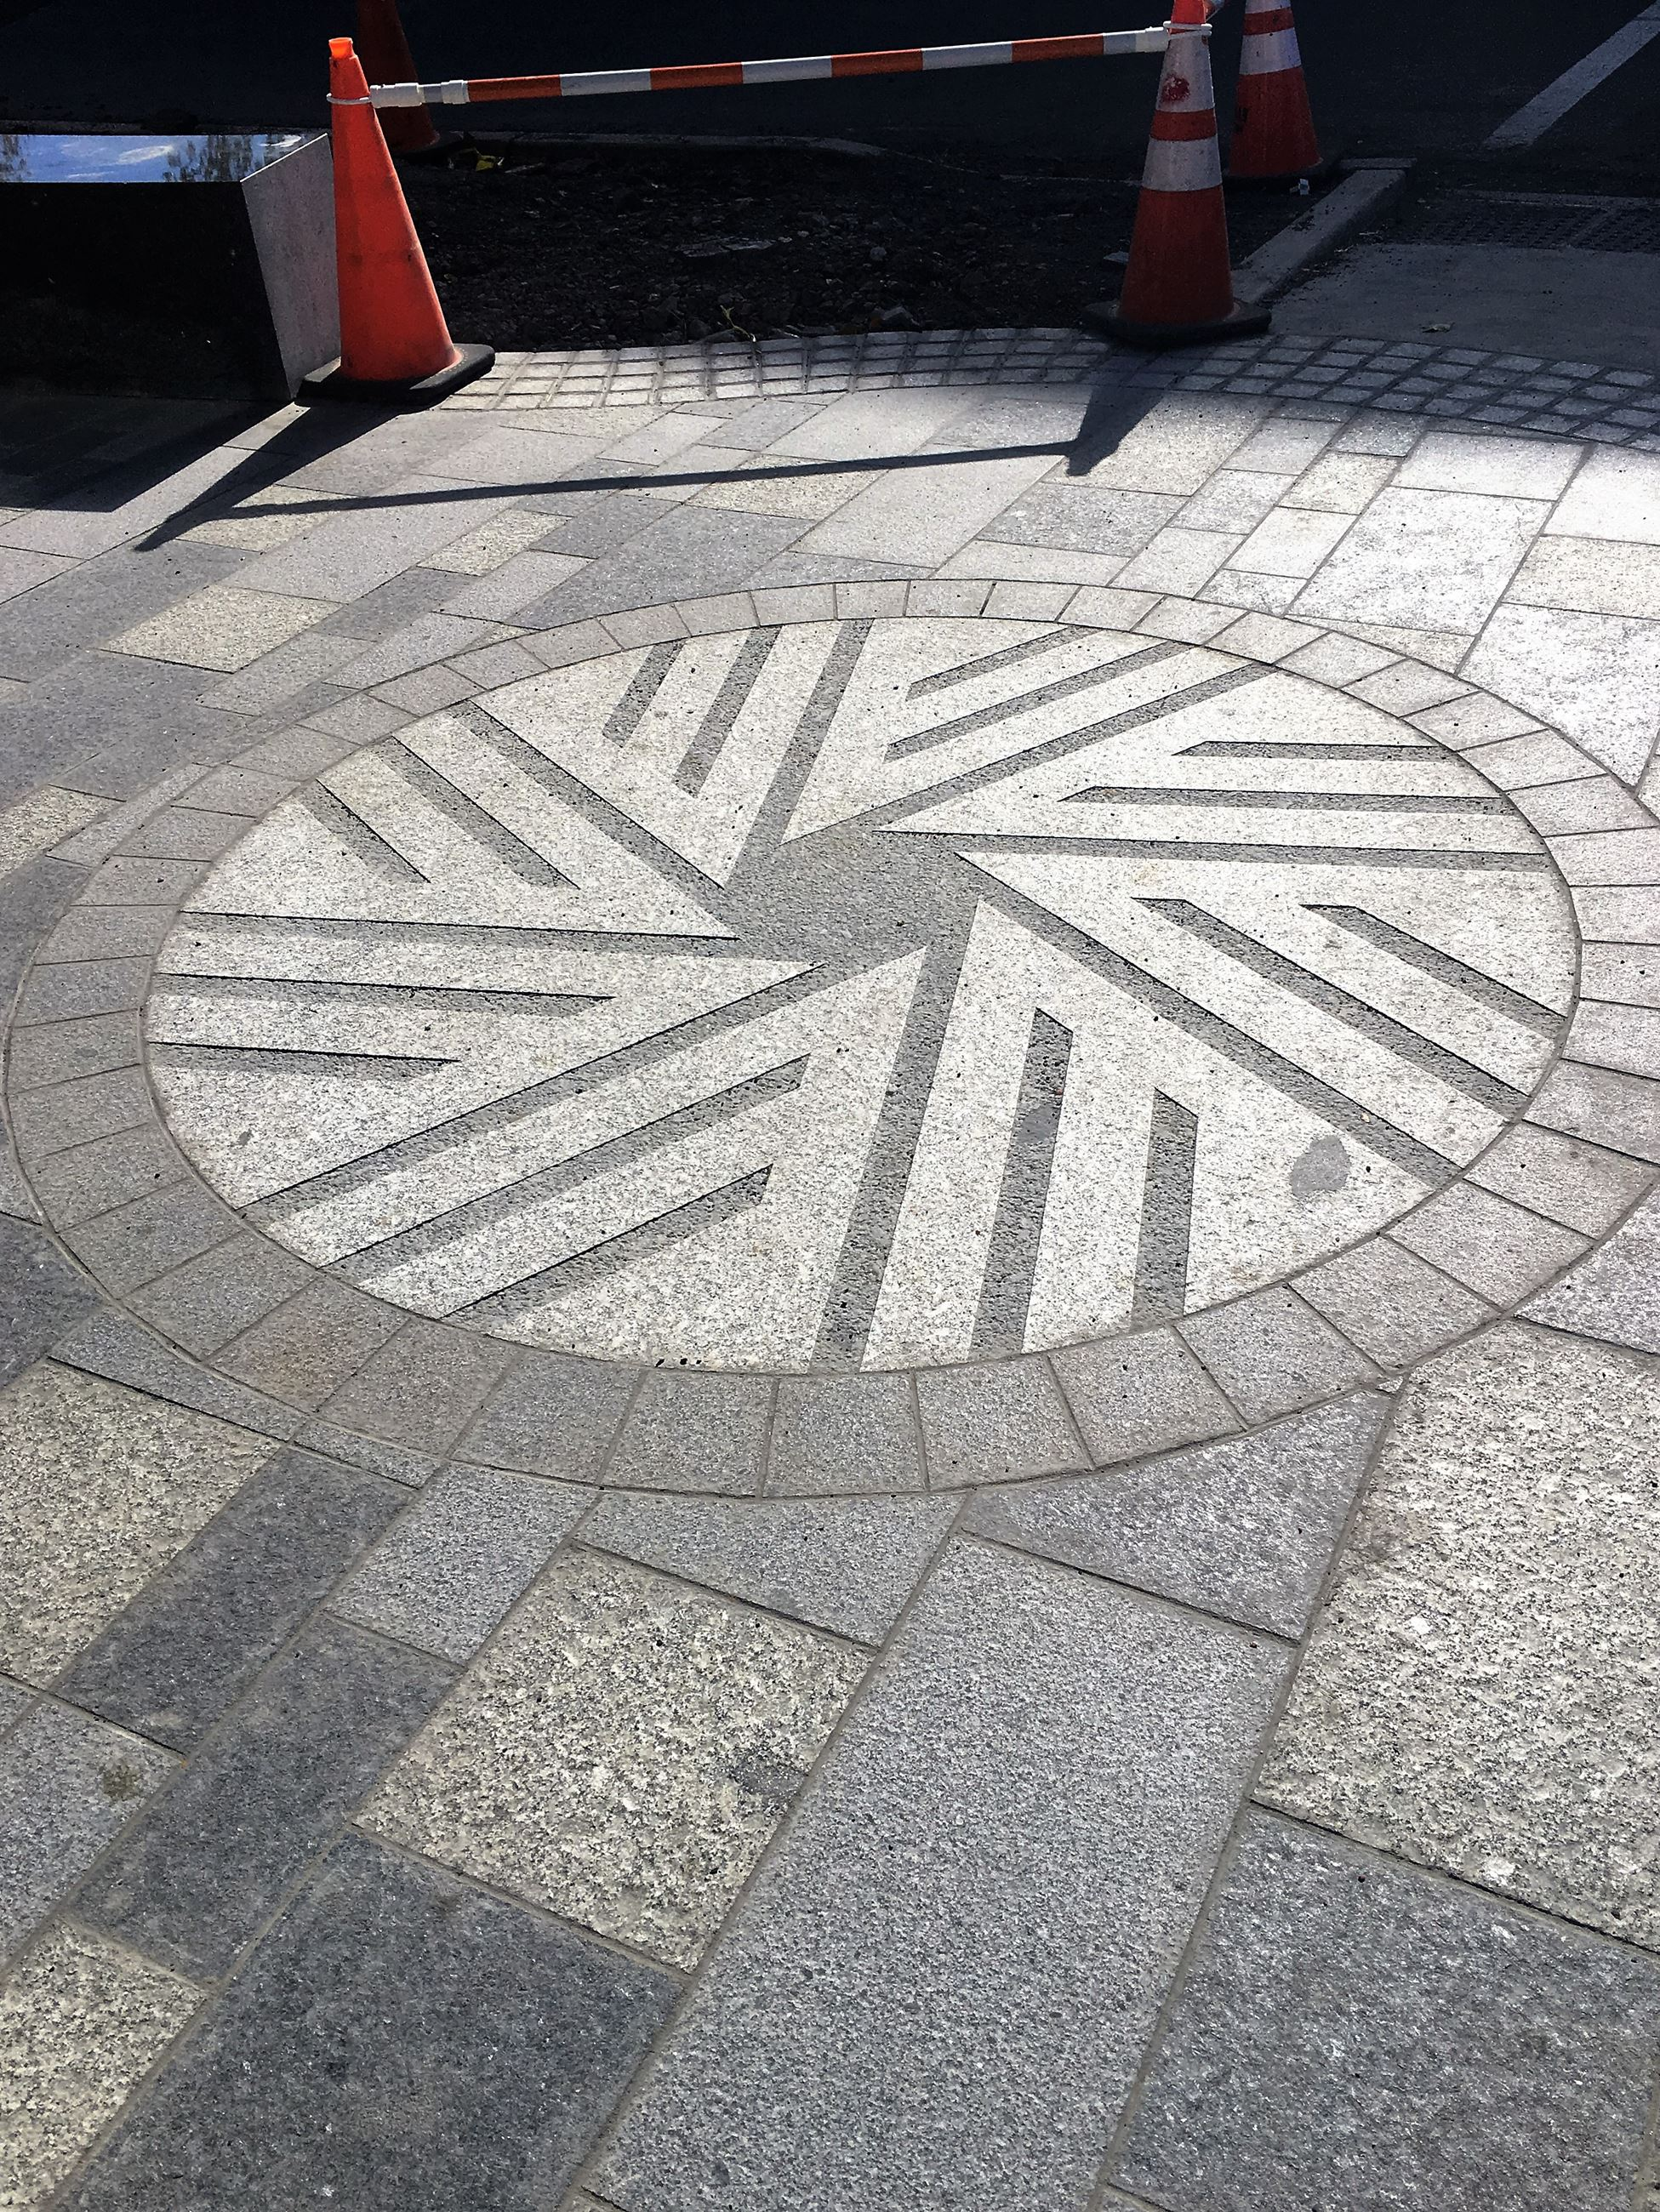 Design in the Sidewalk